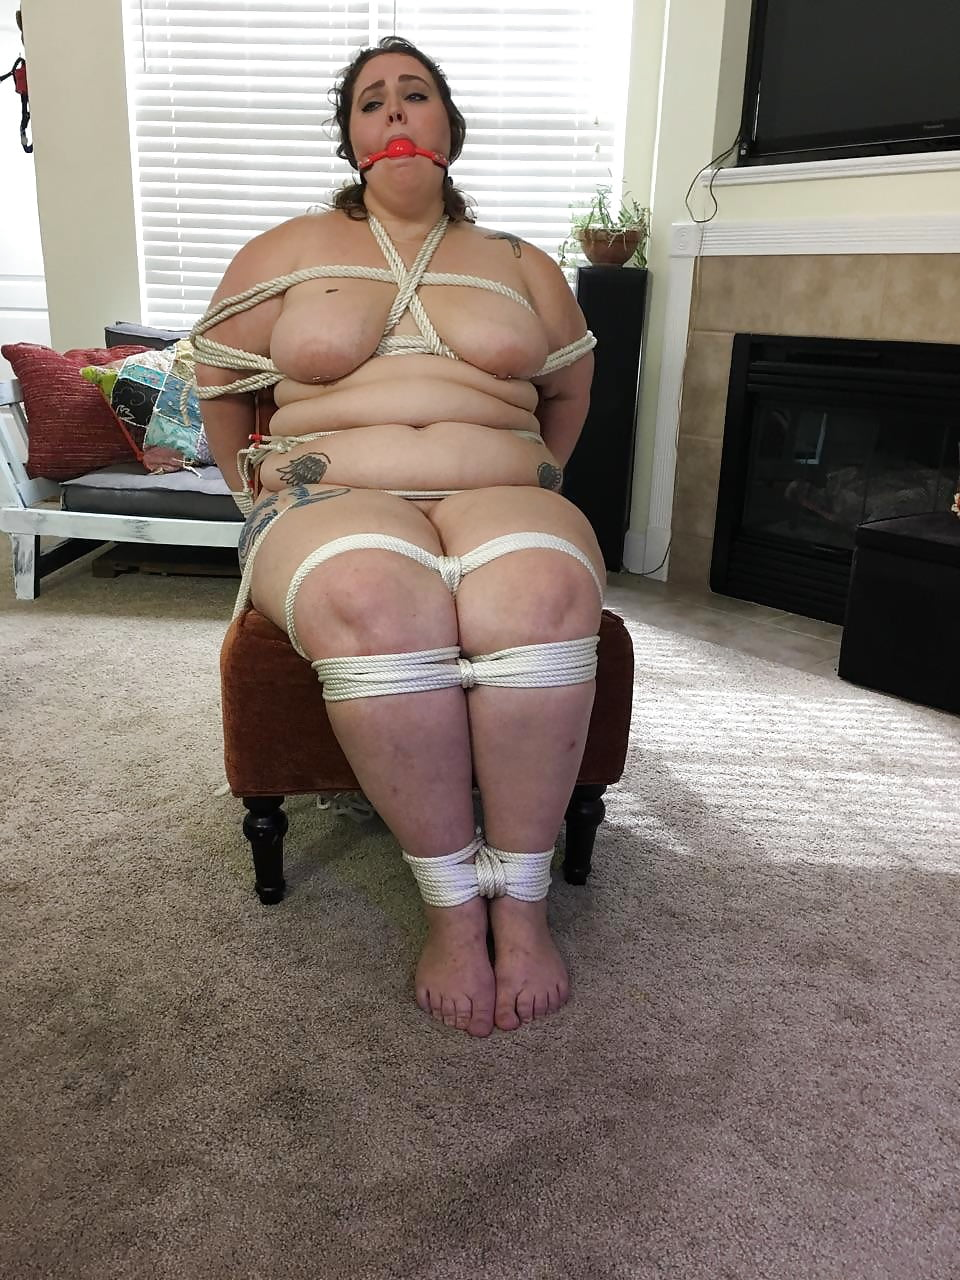 Plus size girls in bondage videos, hot pussy of wild auntys